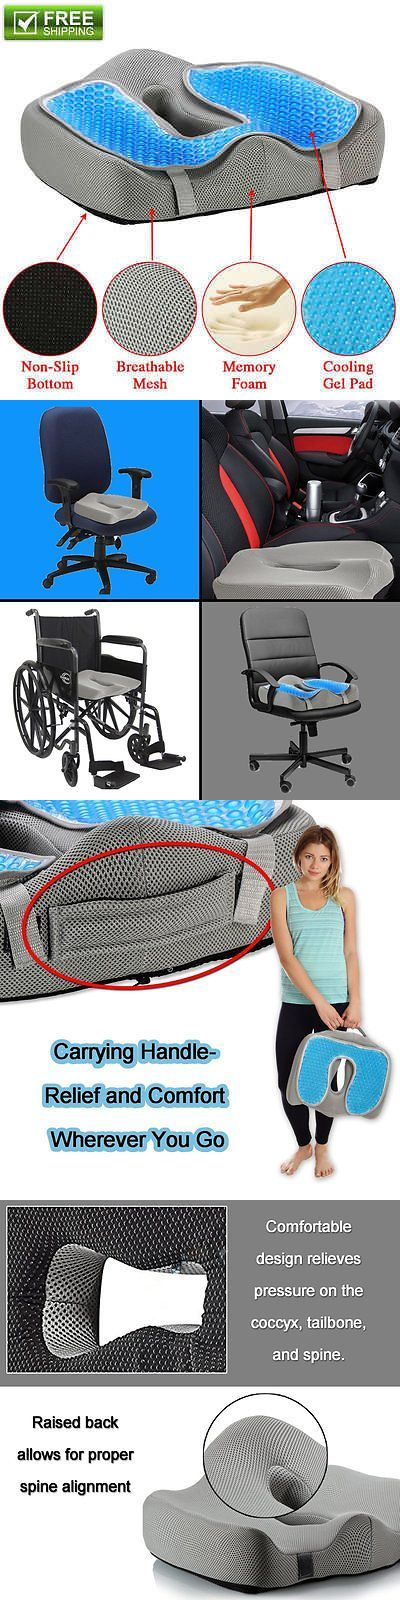 other orthopedic products chair seat cushion cooling gel pillow for sciatica prostate hemorrhoid tailbone